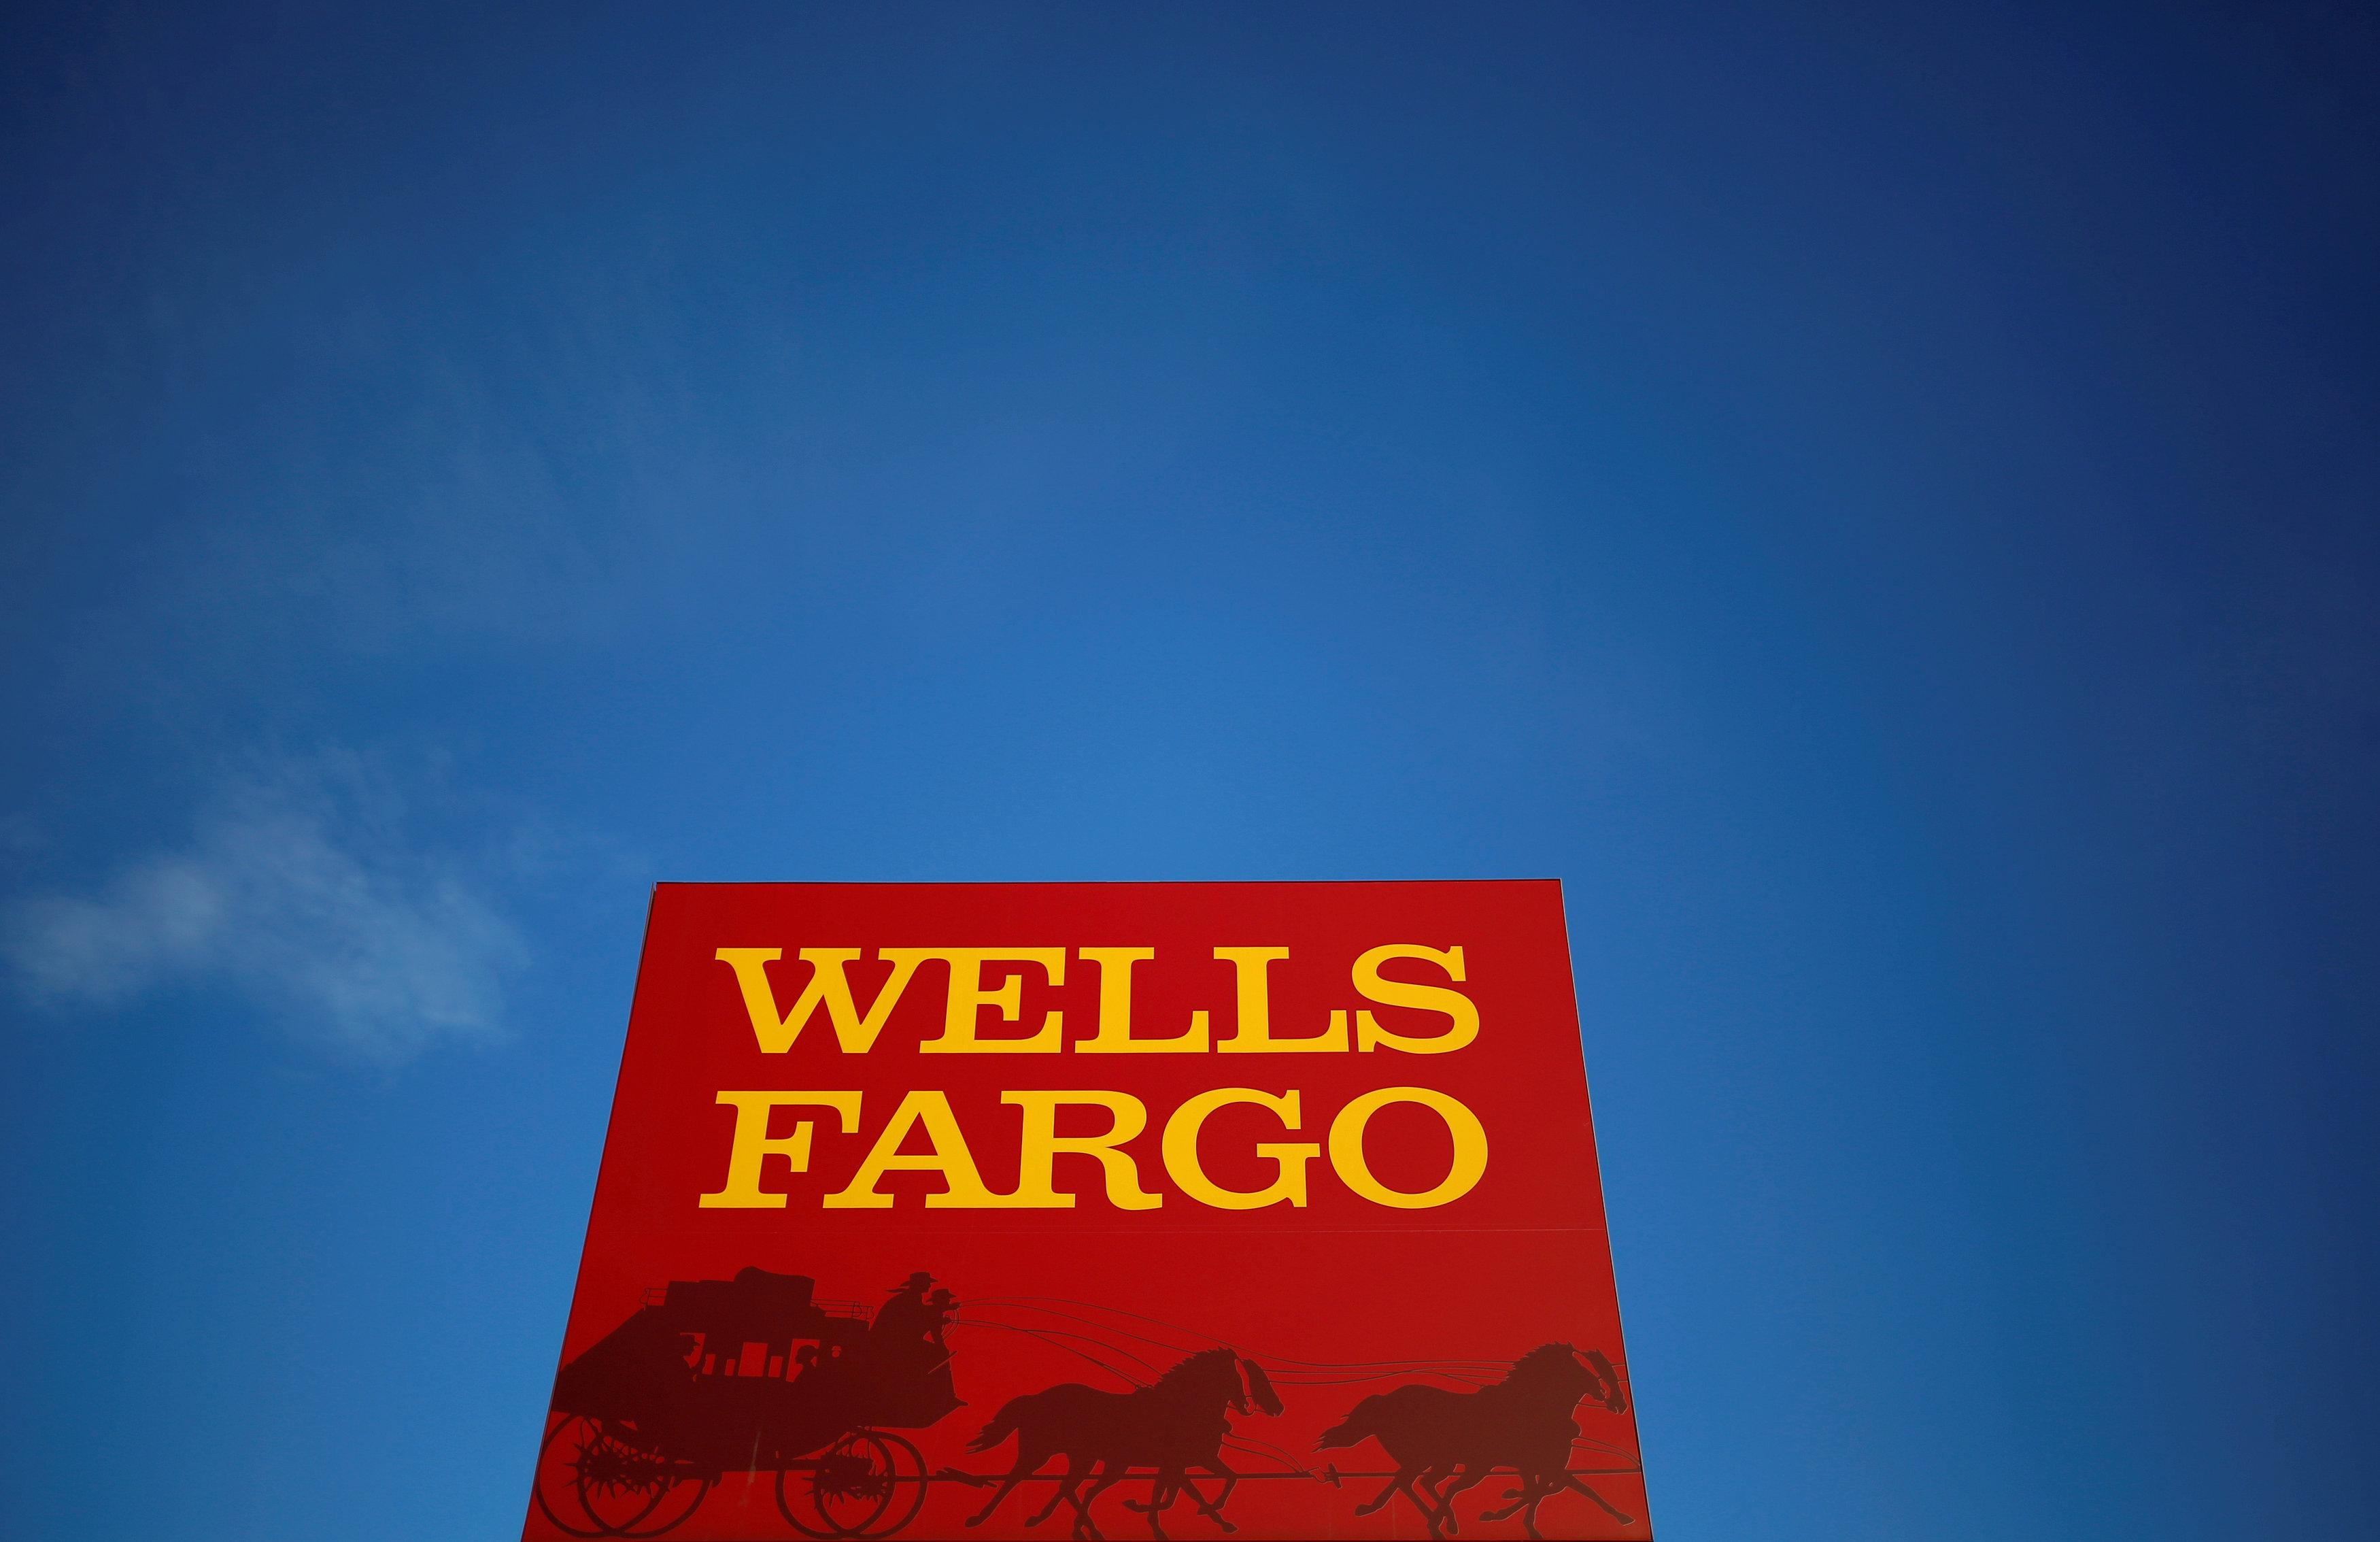 Warren Buffett Is Staying With Wells Fargo Heres Why